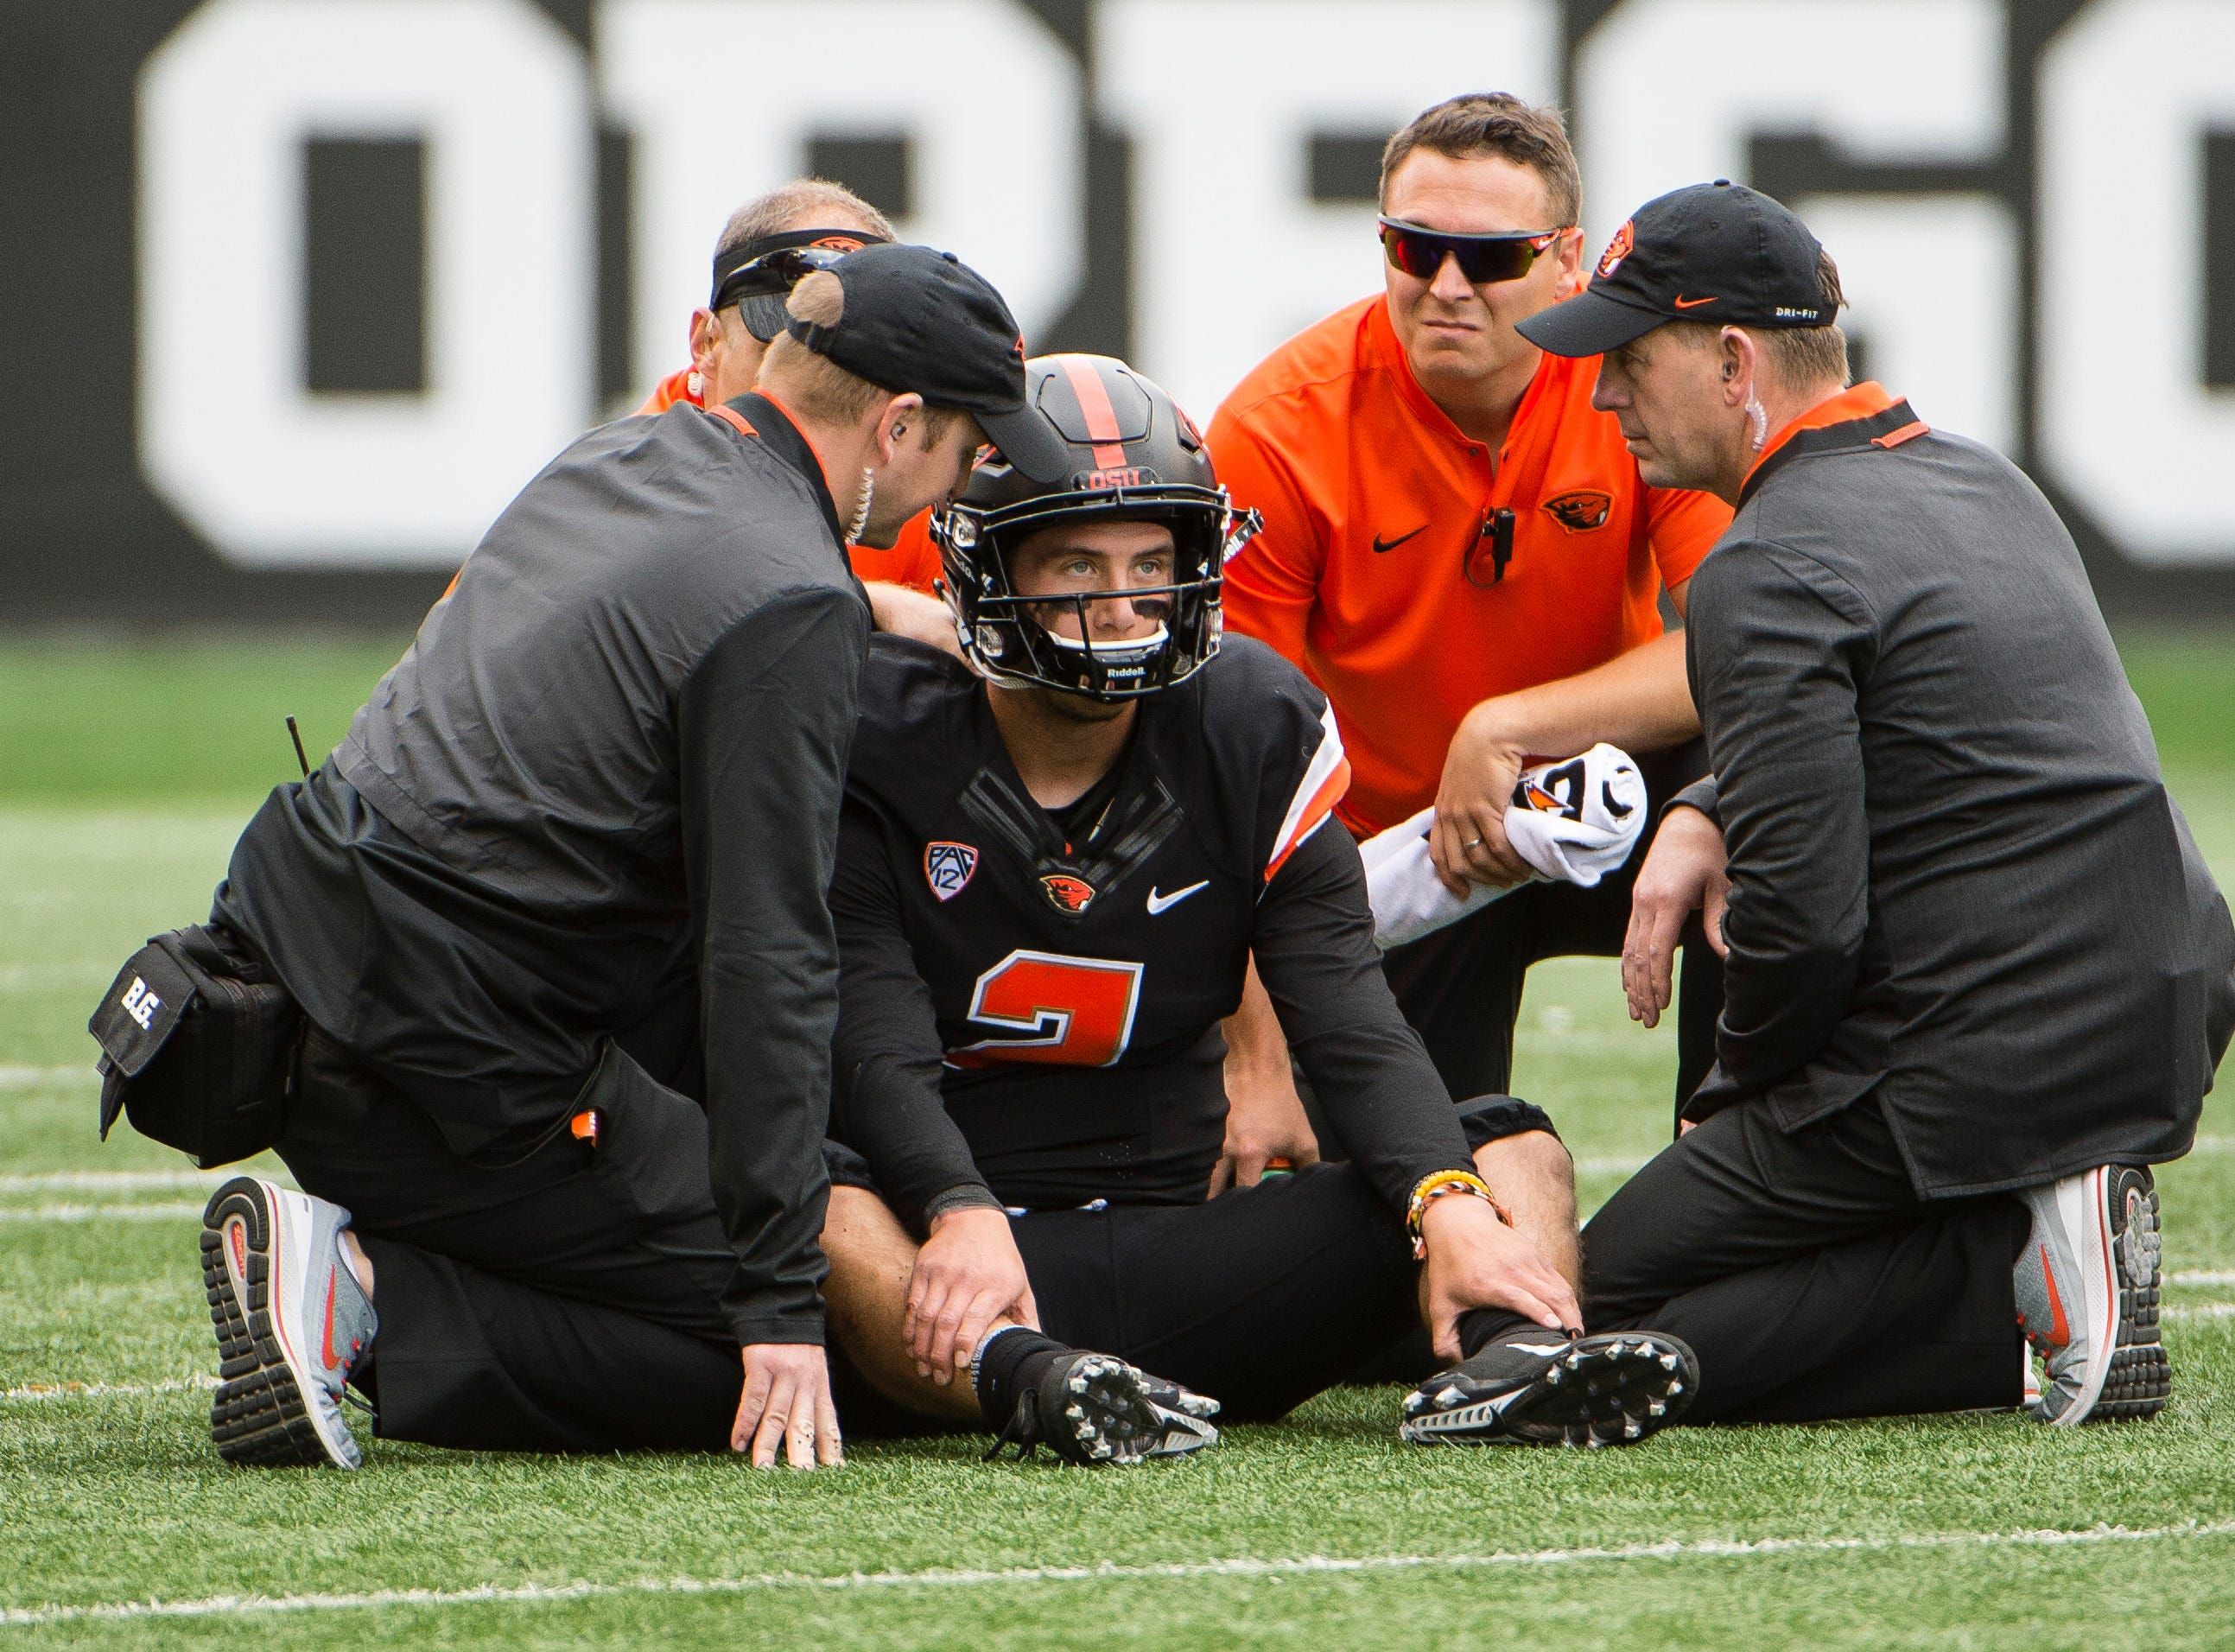 Sep 22, 2018; Corvallis, OR, USA; Oregon State Beavers quarterback Conor Blount (2) is looked after by trainers after getting sacked during the first half against the Arizona Wildcats at Reser Stadium.